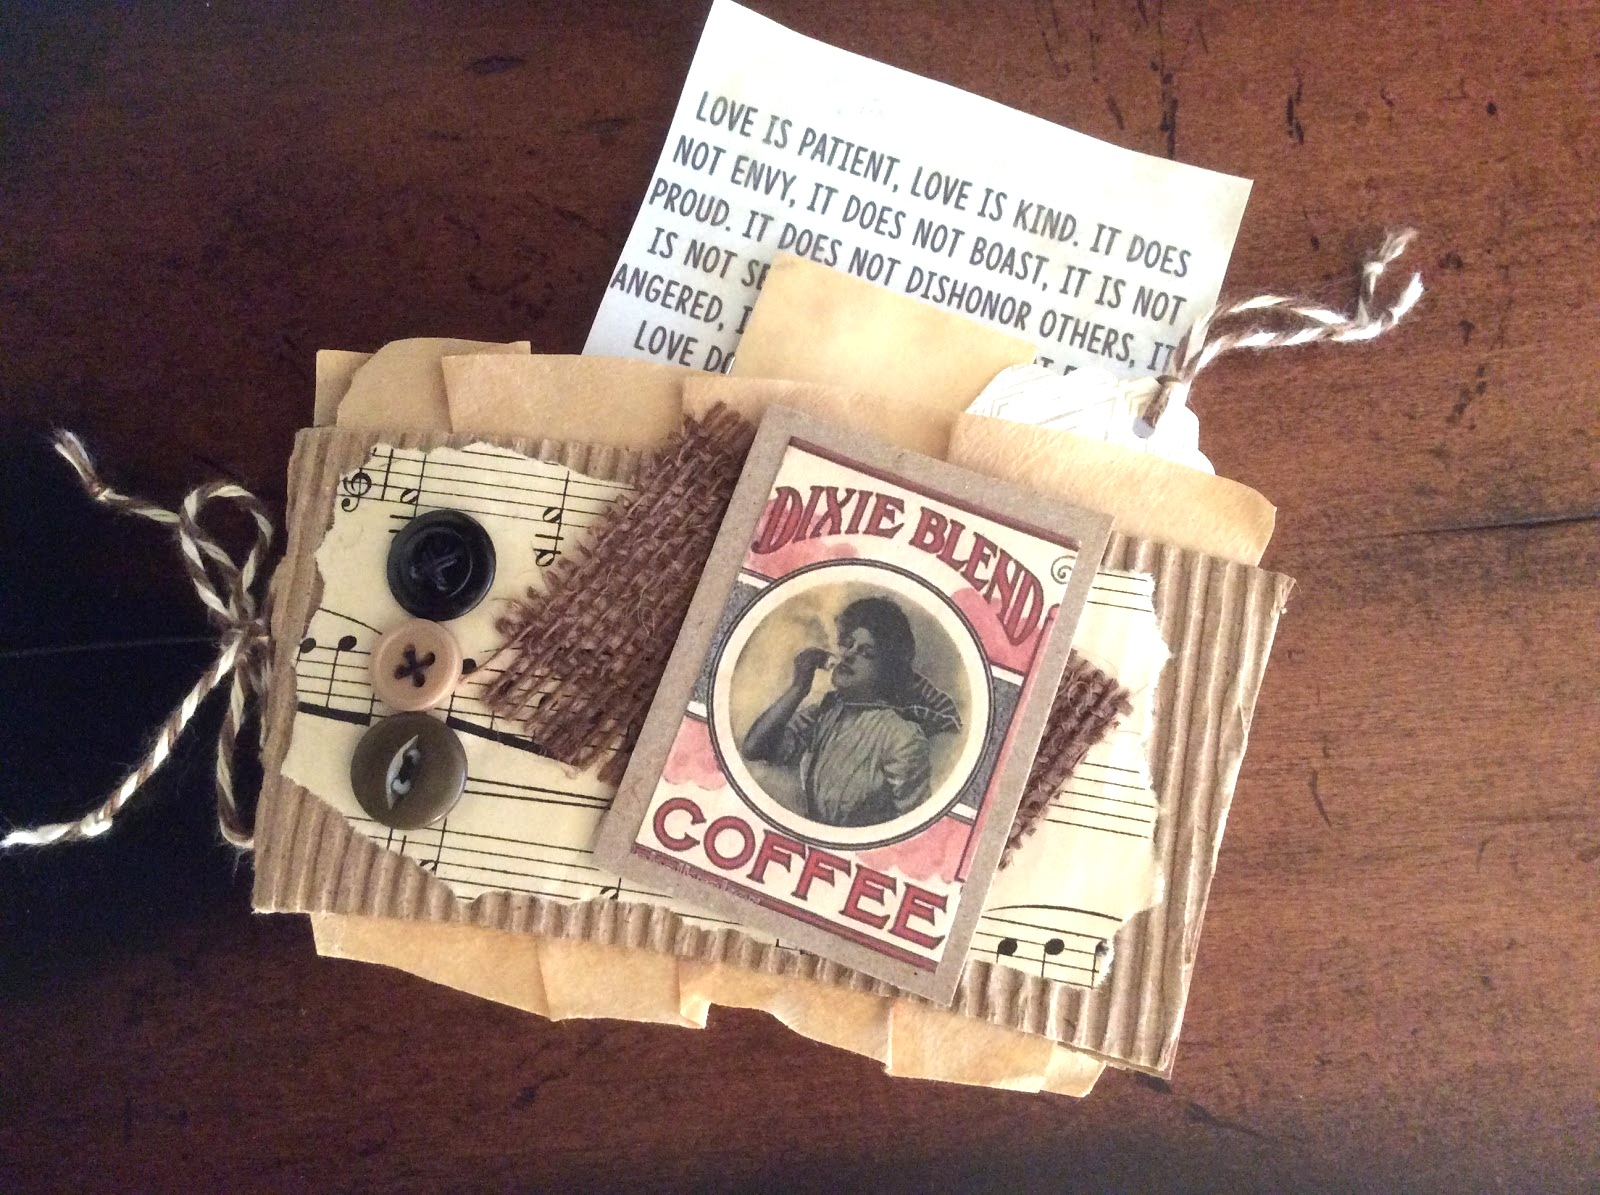 Coffee sleeve mini journal / gift card holder by Fresh Vintage by Lisa S, featured on DIY Salvaged Junk Projects 513 on Funky Junk Interiors, part of an up-cycled link party!